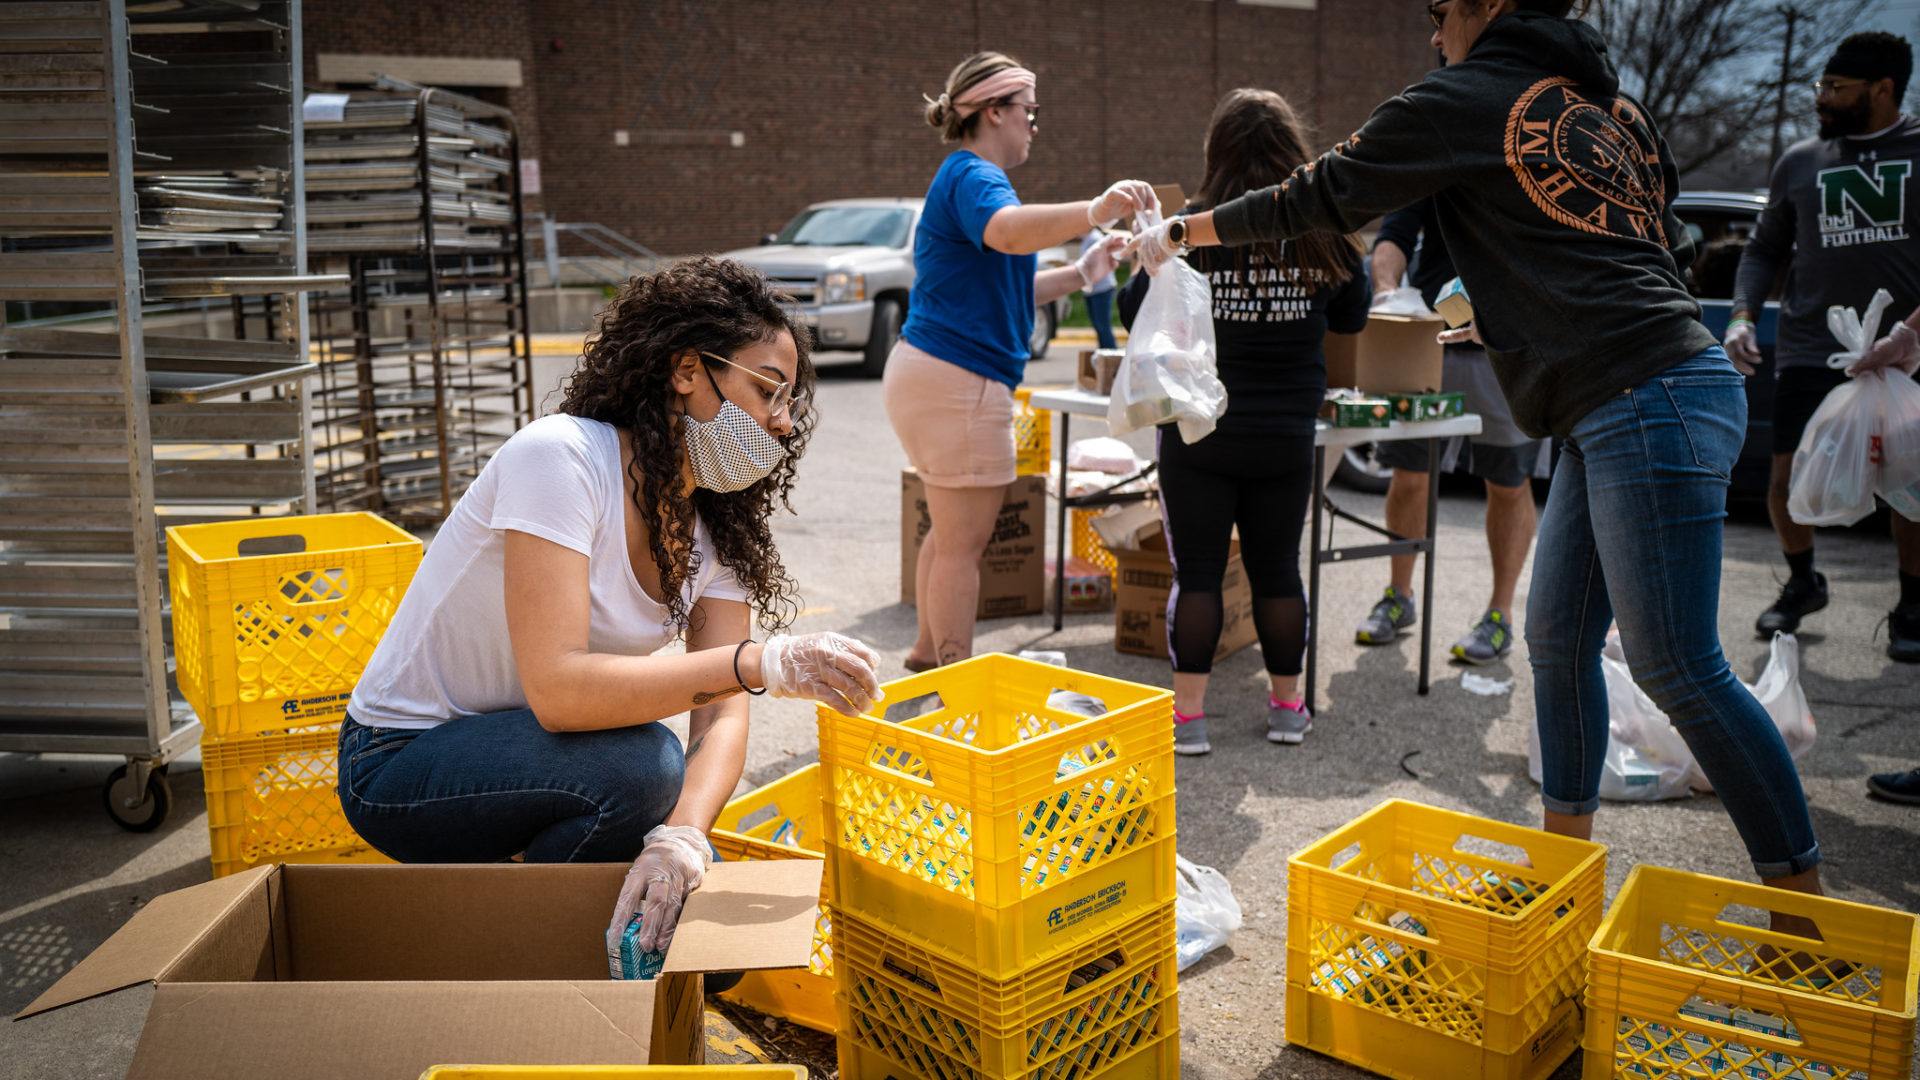 Image shows a group of people packing supplies into yellow crates